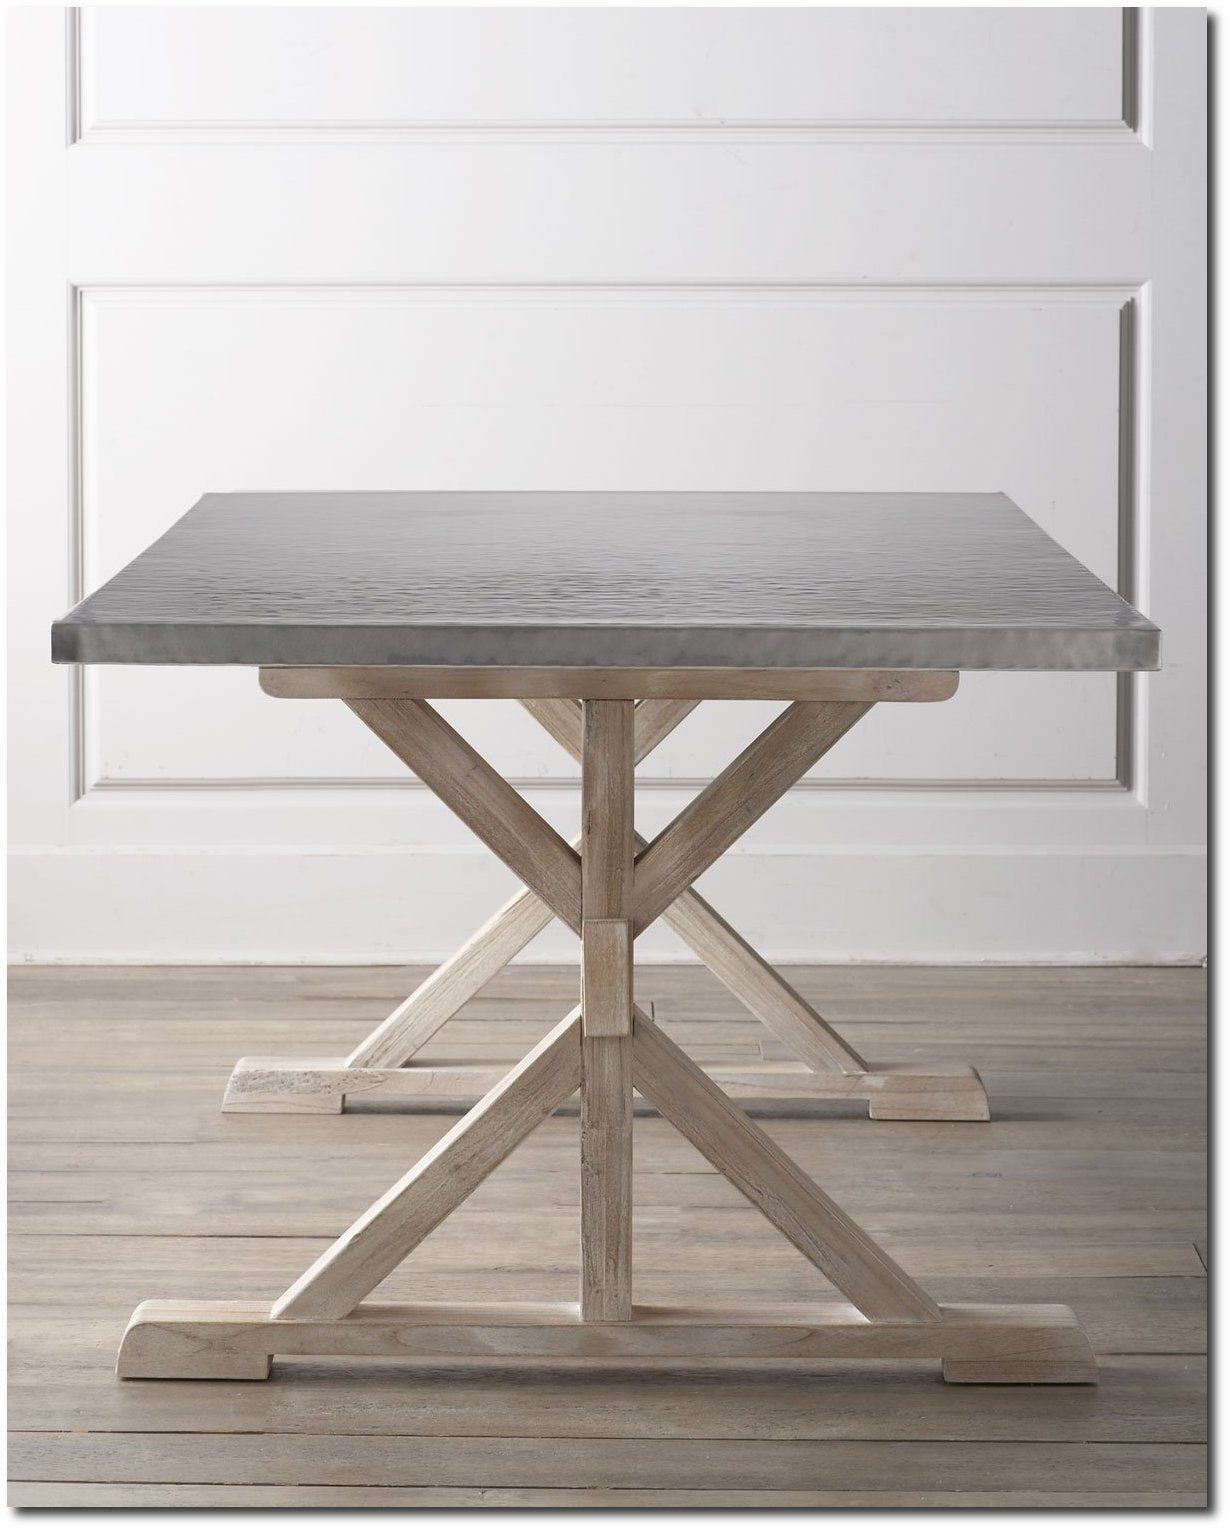 Superb Stainless Steel Top Dining Table